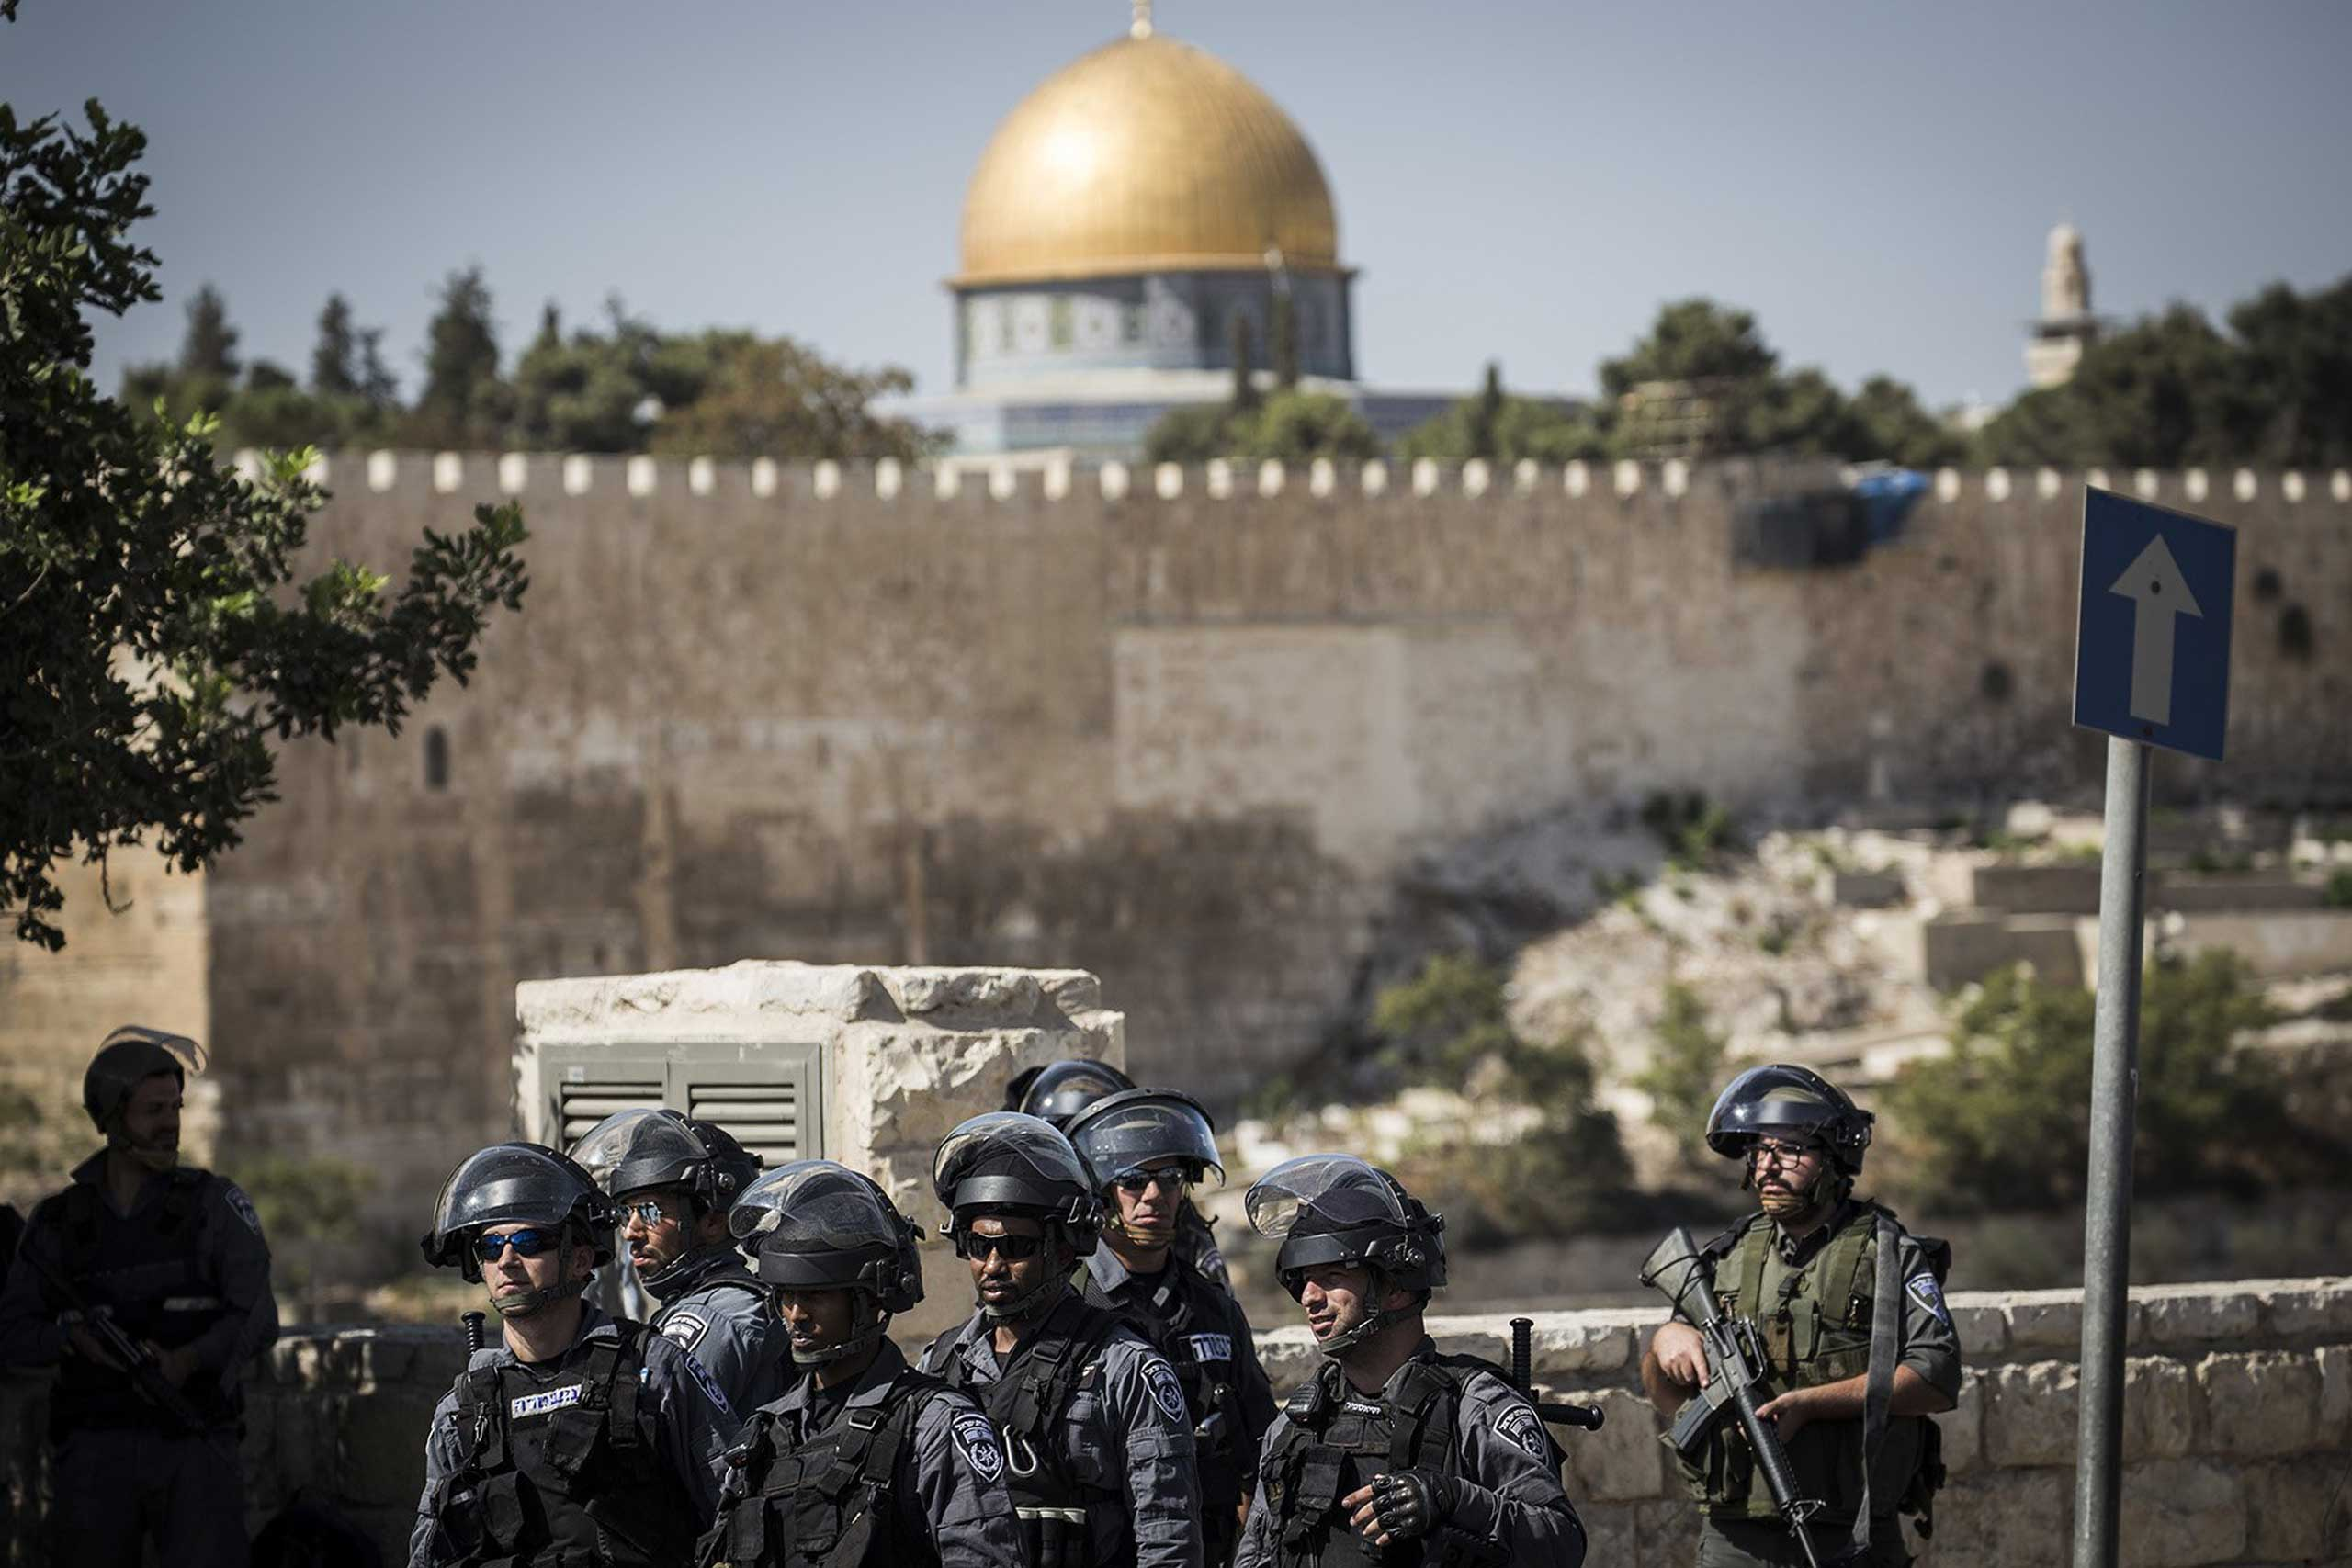 Israeli security forces look on during a noon Friday prayer outside Ras Al Amud neighborhood in Jerusalem, on Oct. 16, 2015.